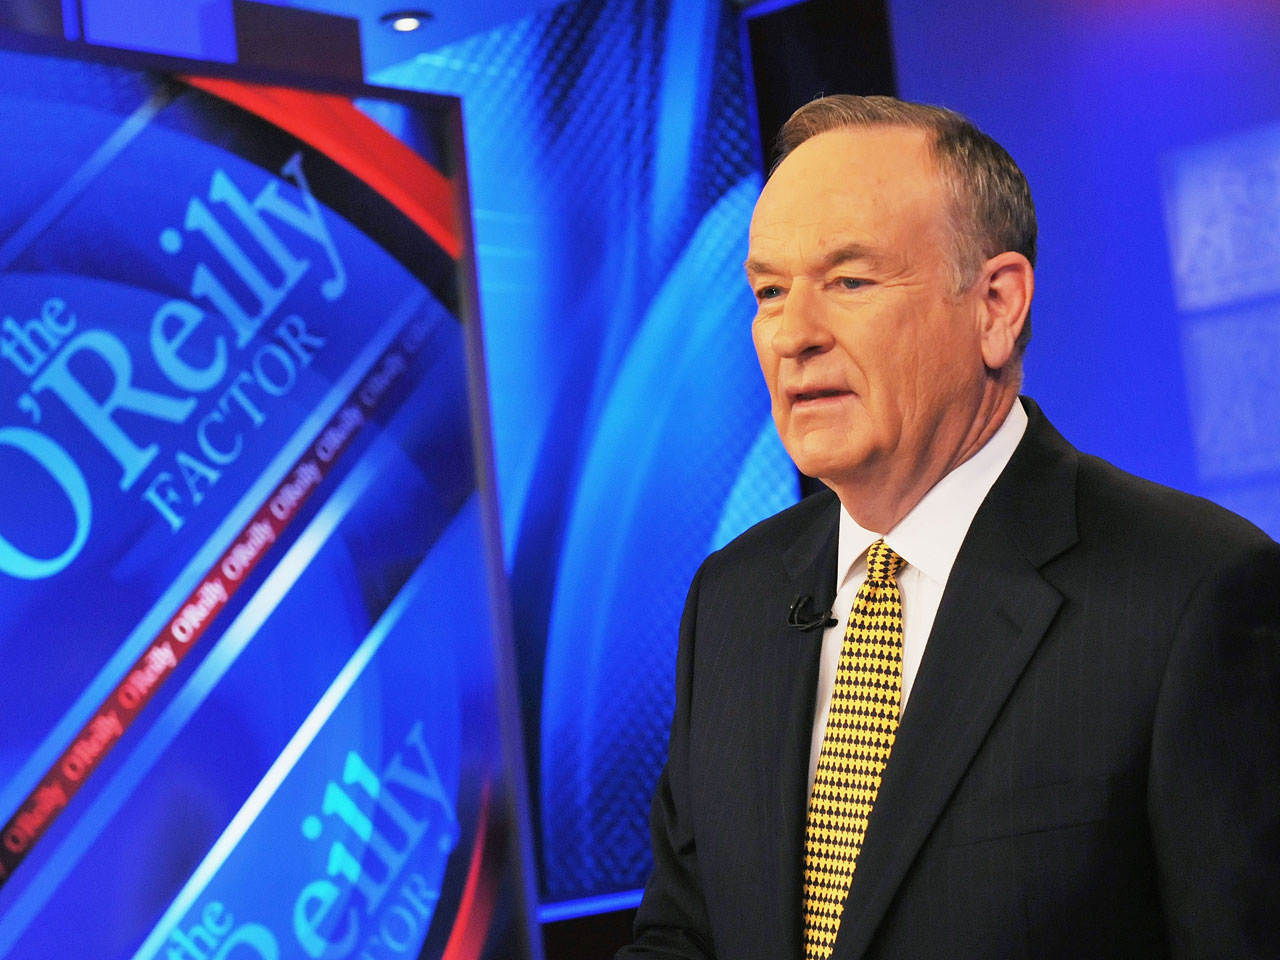 b2d2a1bf0bb0 variety.com Bill O Reilly in line for fat payout after losing job at Fox